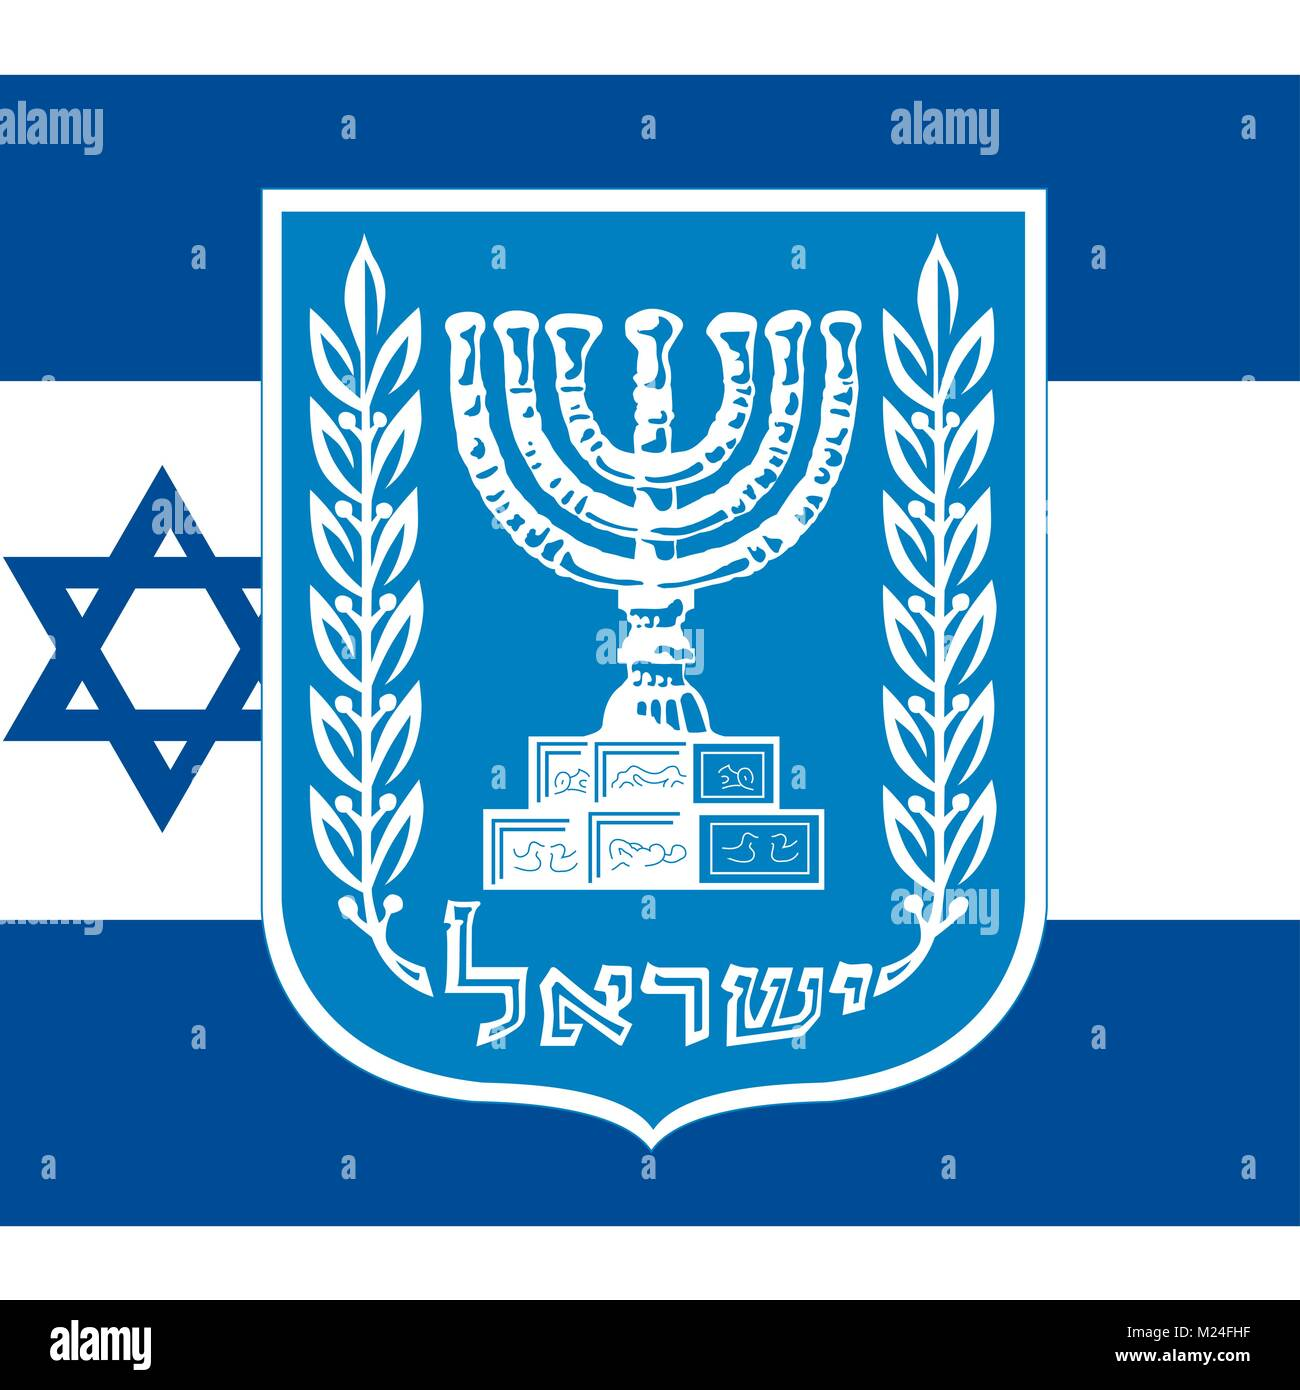 Israel coat of arms and flag official symbols of the nation stock israel coat of arms and flag official symbols of the nation buycottarizona Images